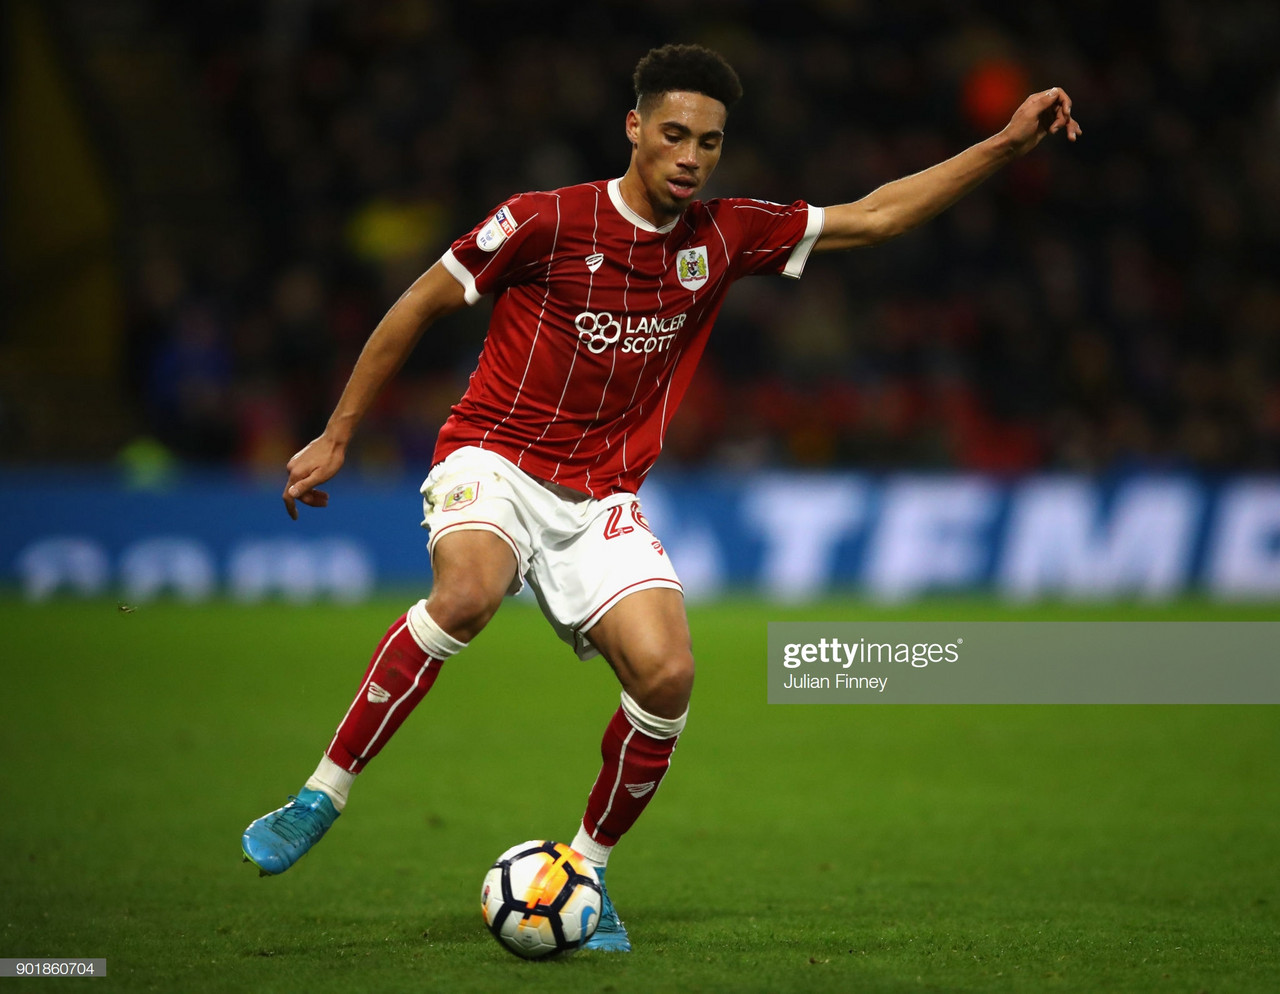 Aberdeen complete loan signing of Bristol City's Zak Vyner